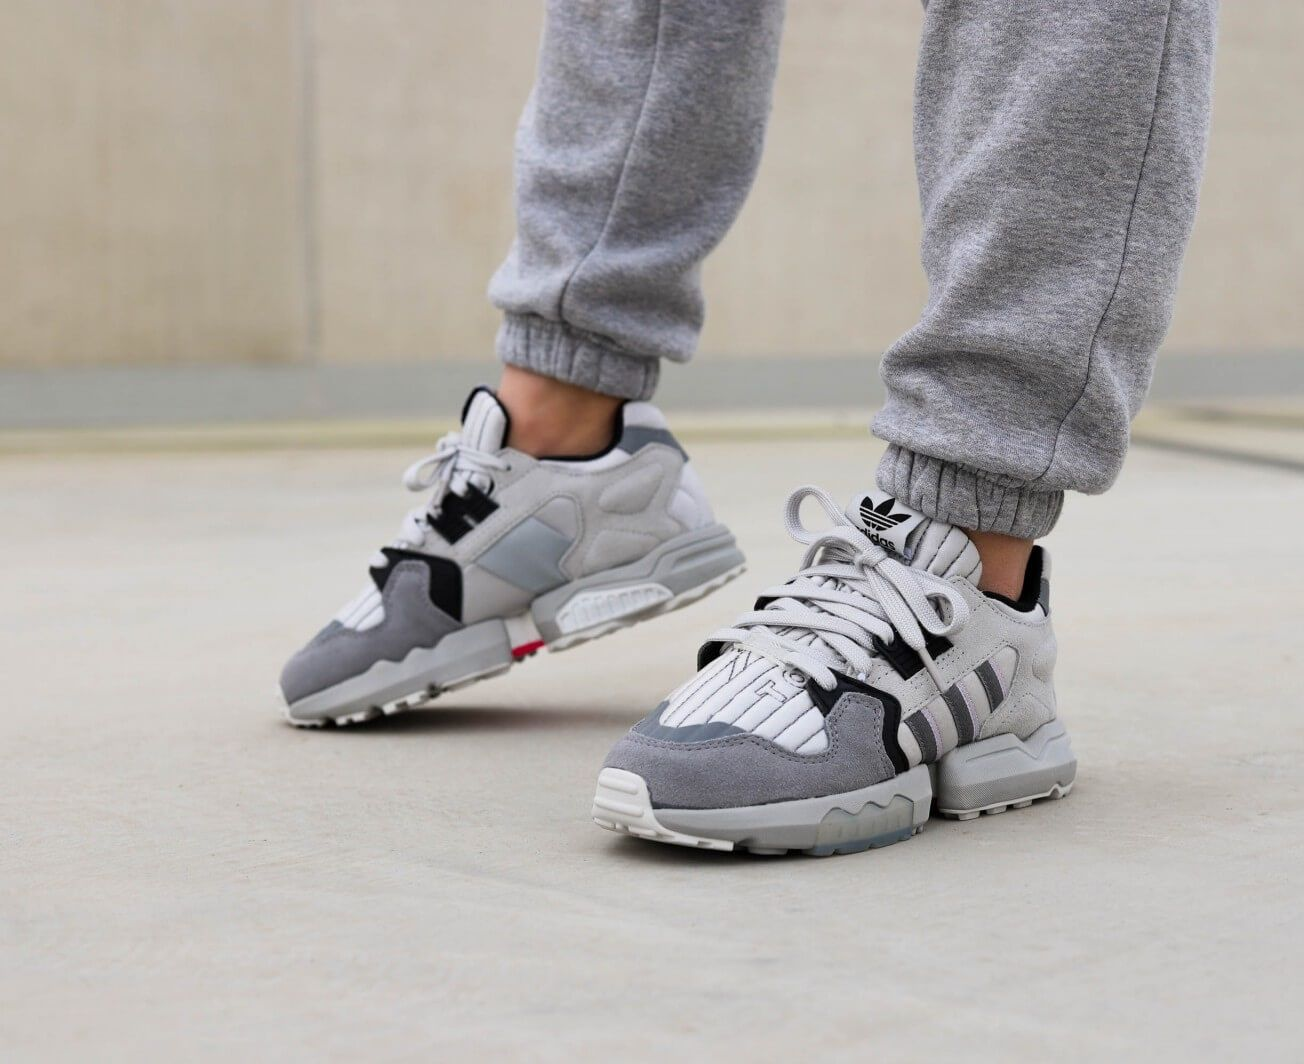 Hablar en voz alta James Dyson Suburbio  adidas Originals ZX Torsion | Cute shoes, Sneakers, Nice shoes